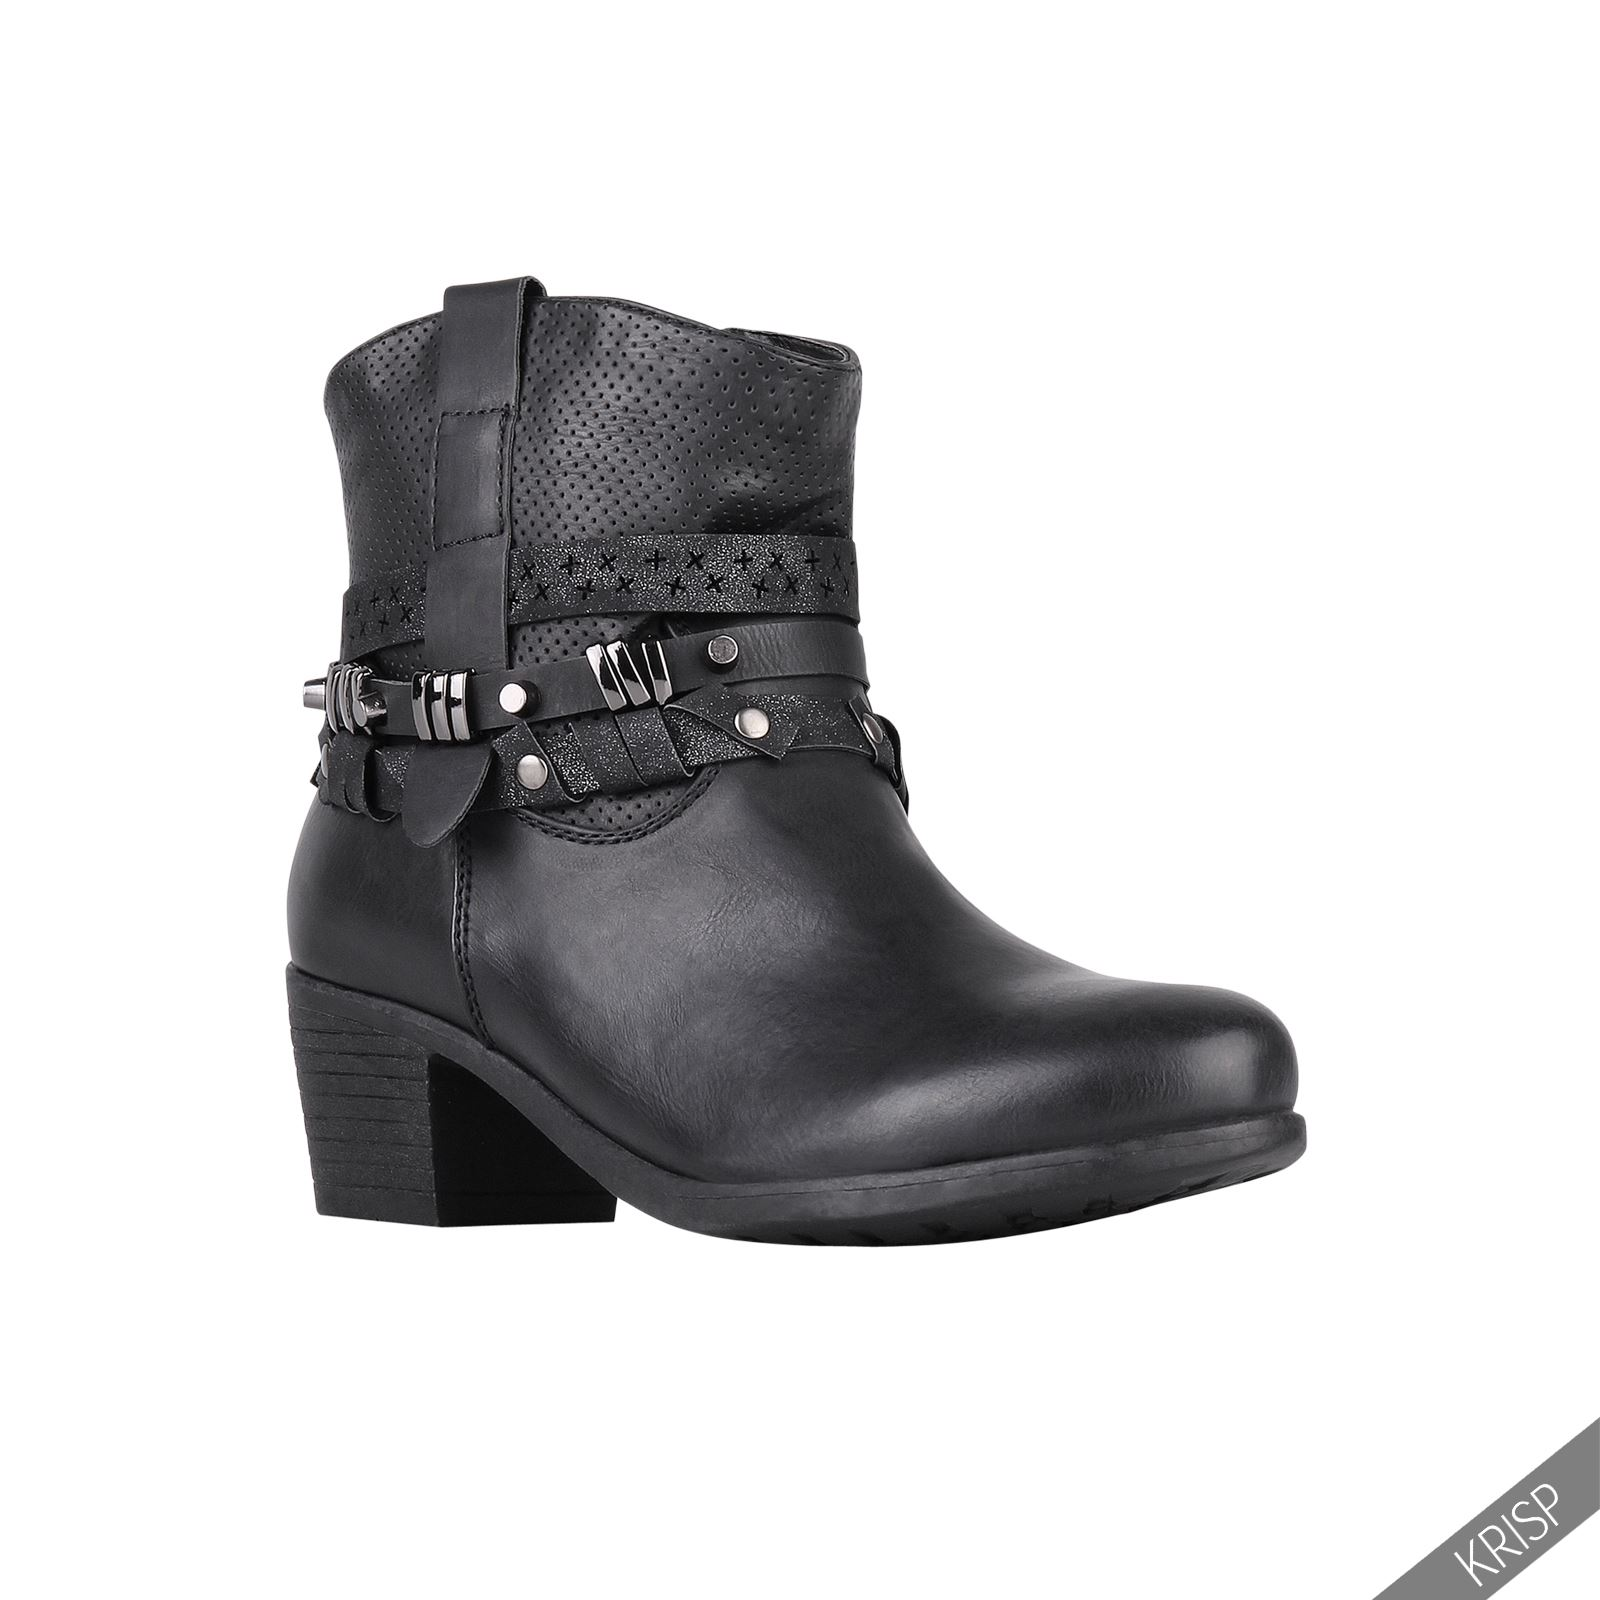 damen wildleder chealsea schuhe nieten design ankle boots niedriger absatz ebay. Black Bedroom Furniture Sets. Home Design Ideas